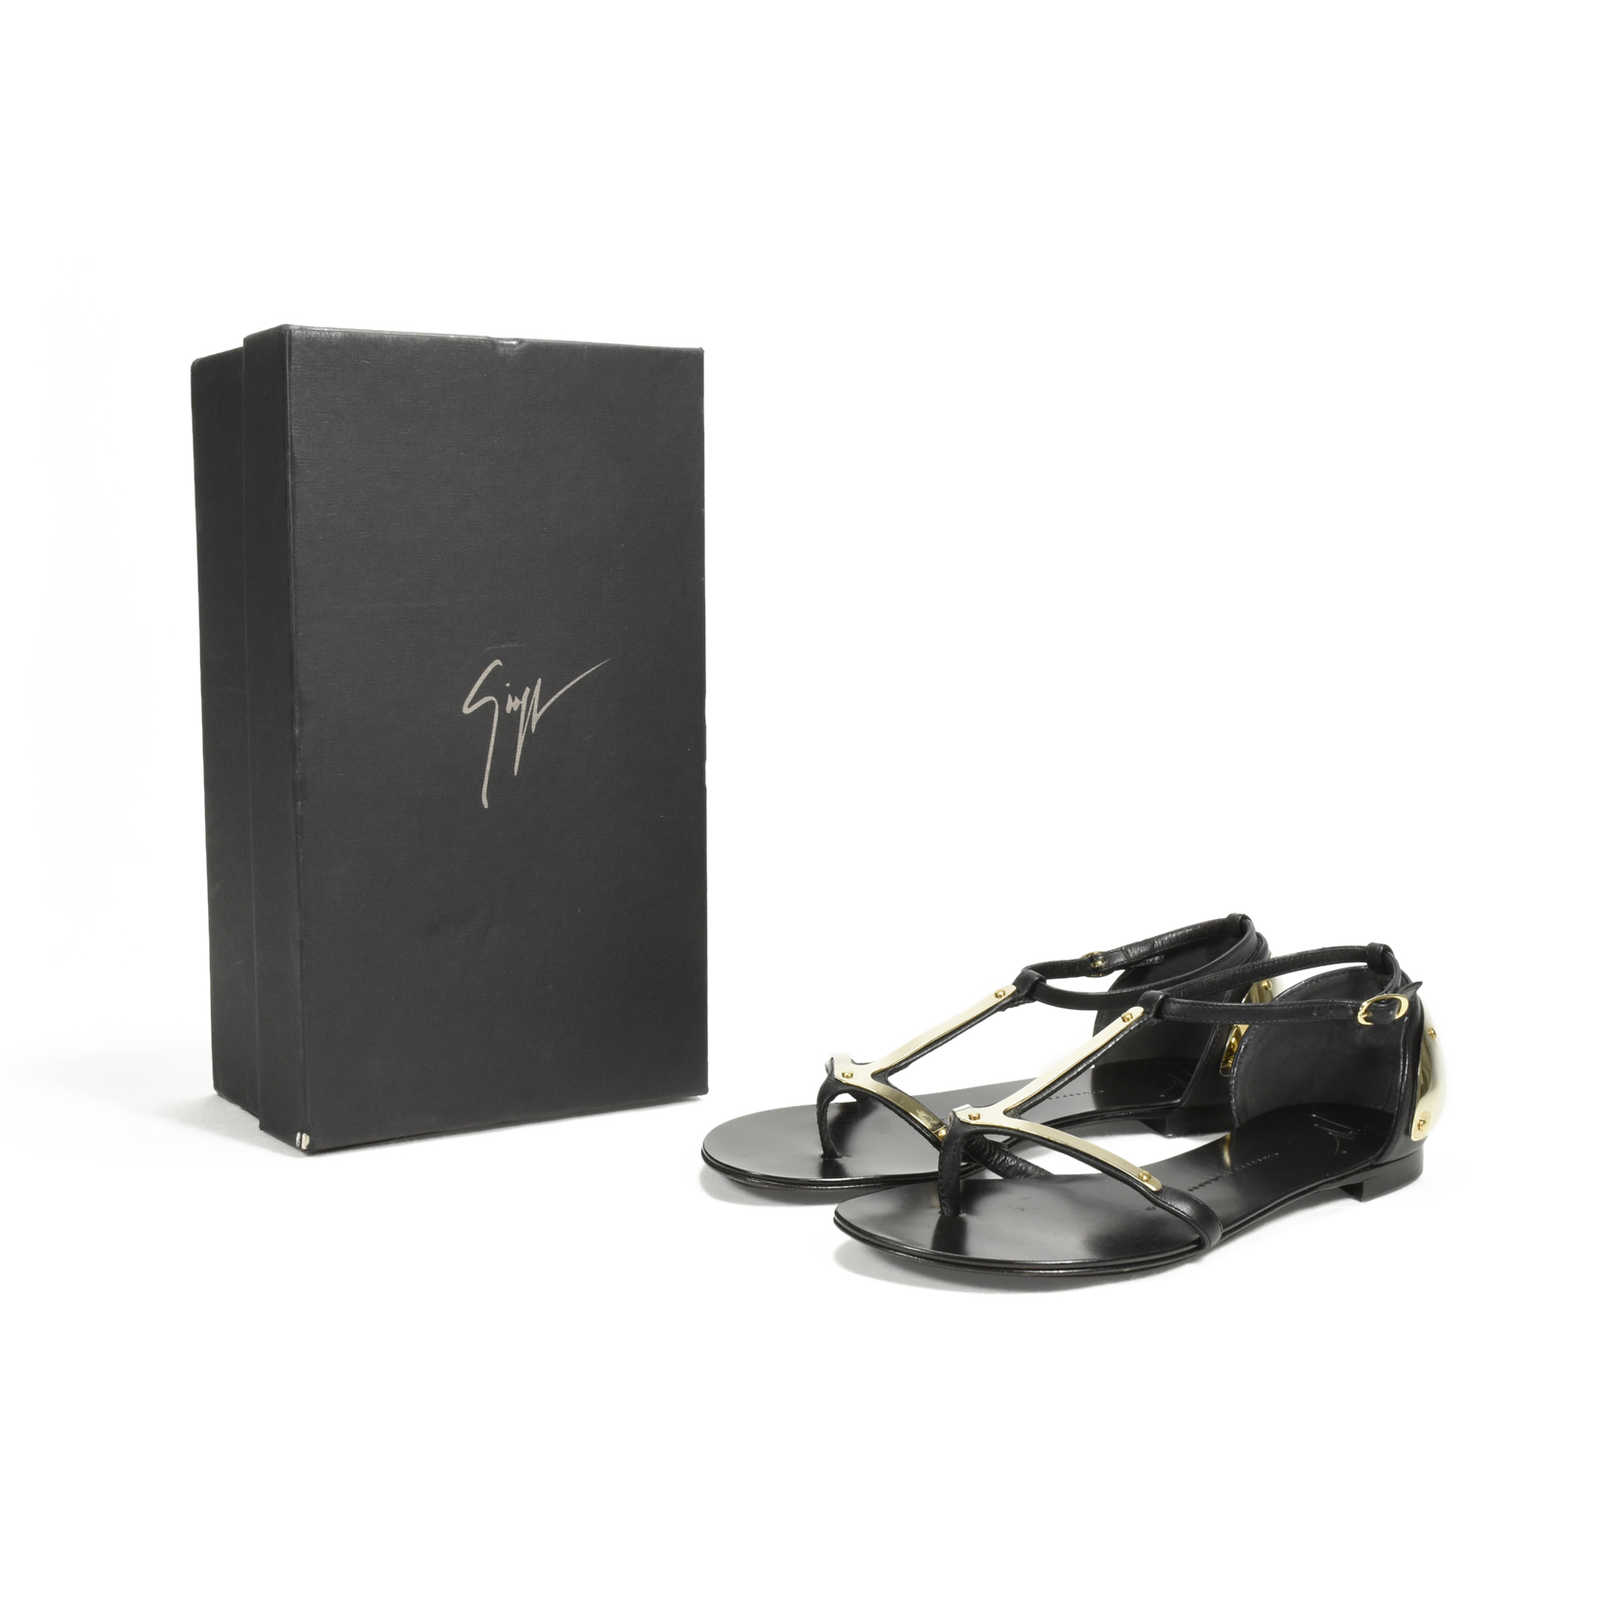 6b6191d1bbe01 ... Authentic Second Hand Giuseppe Zanotti Rock 10 Infradito Sandals  (PSS-369-00039)